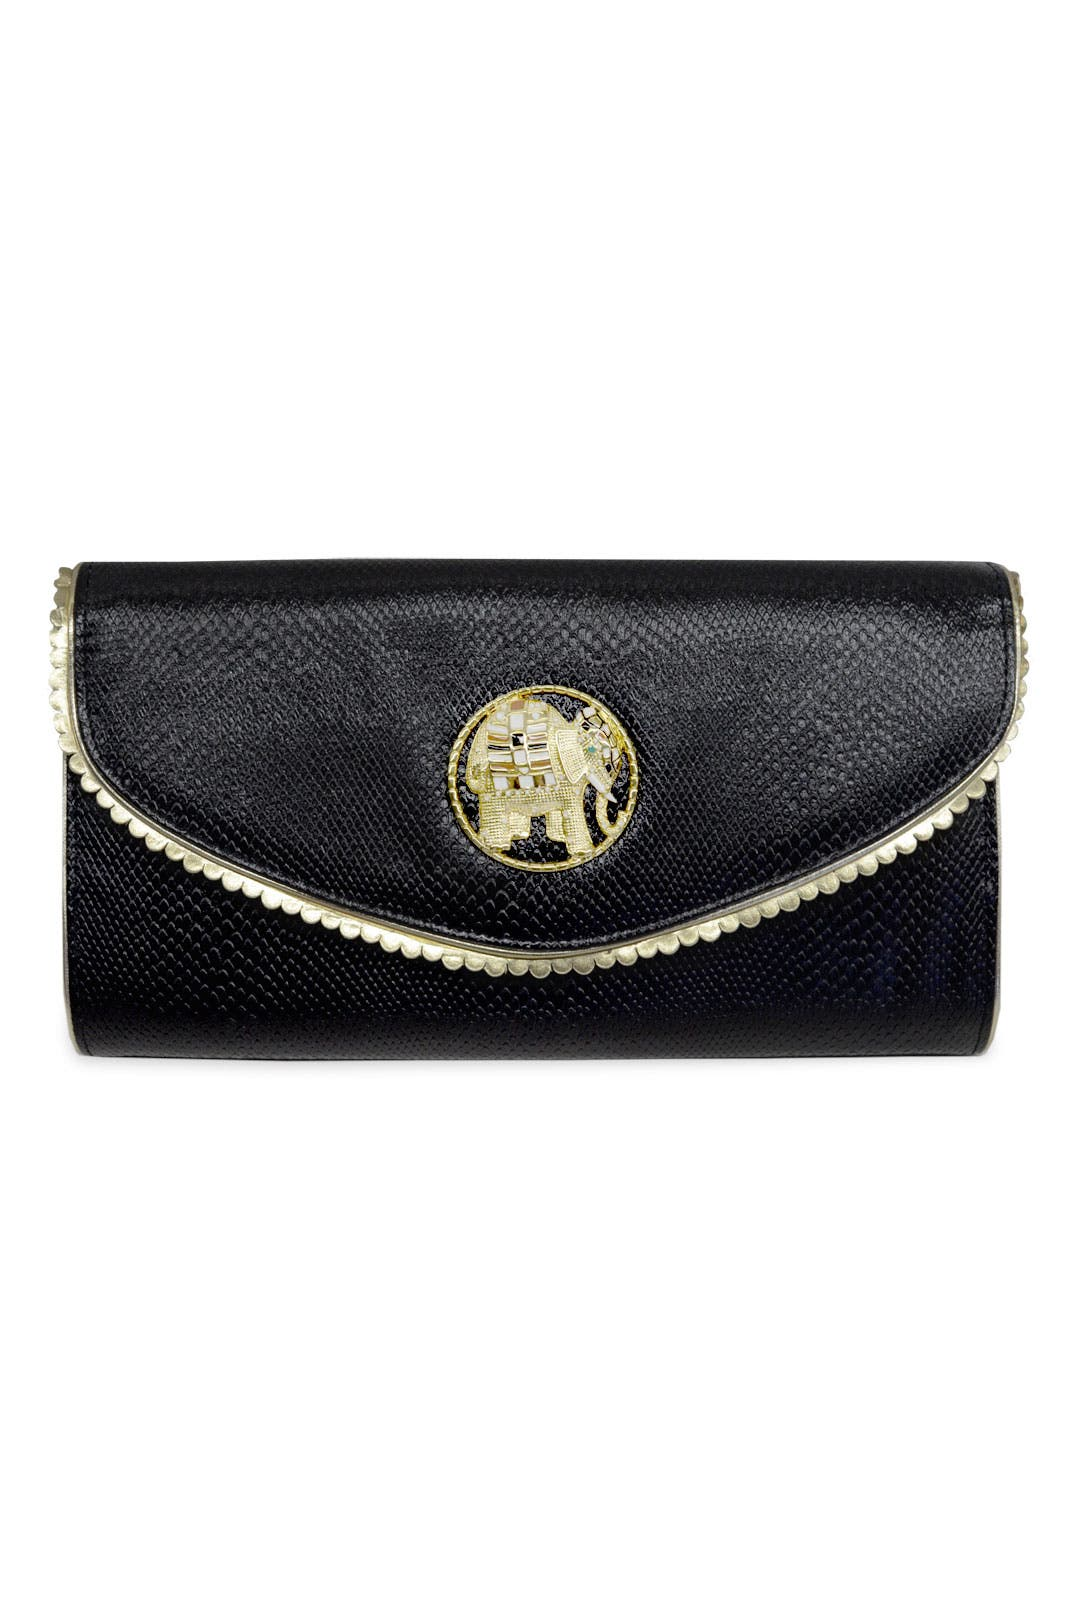 Elephant Love Note Clutch by Lilly Pulitzer Handbags